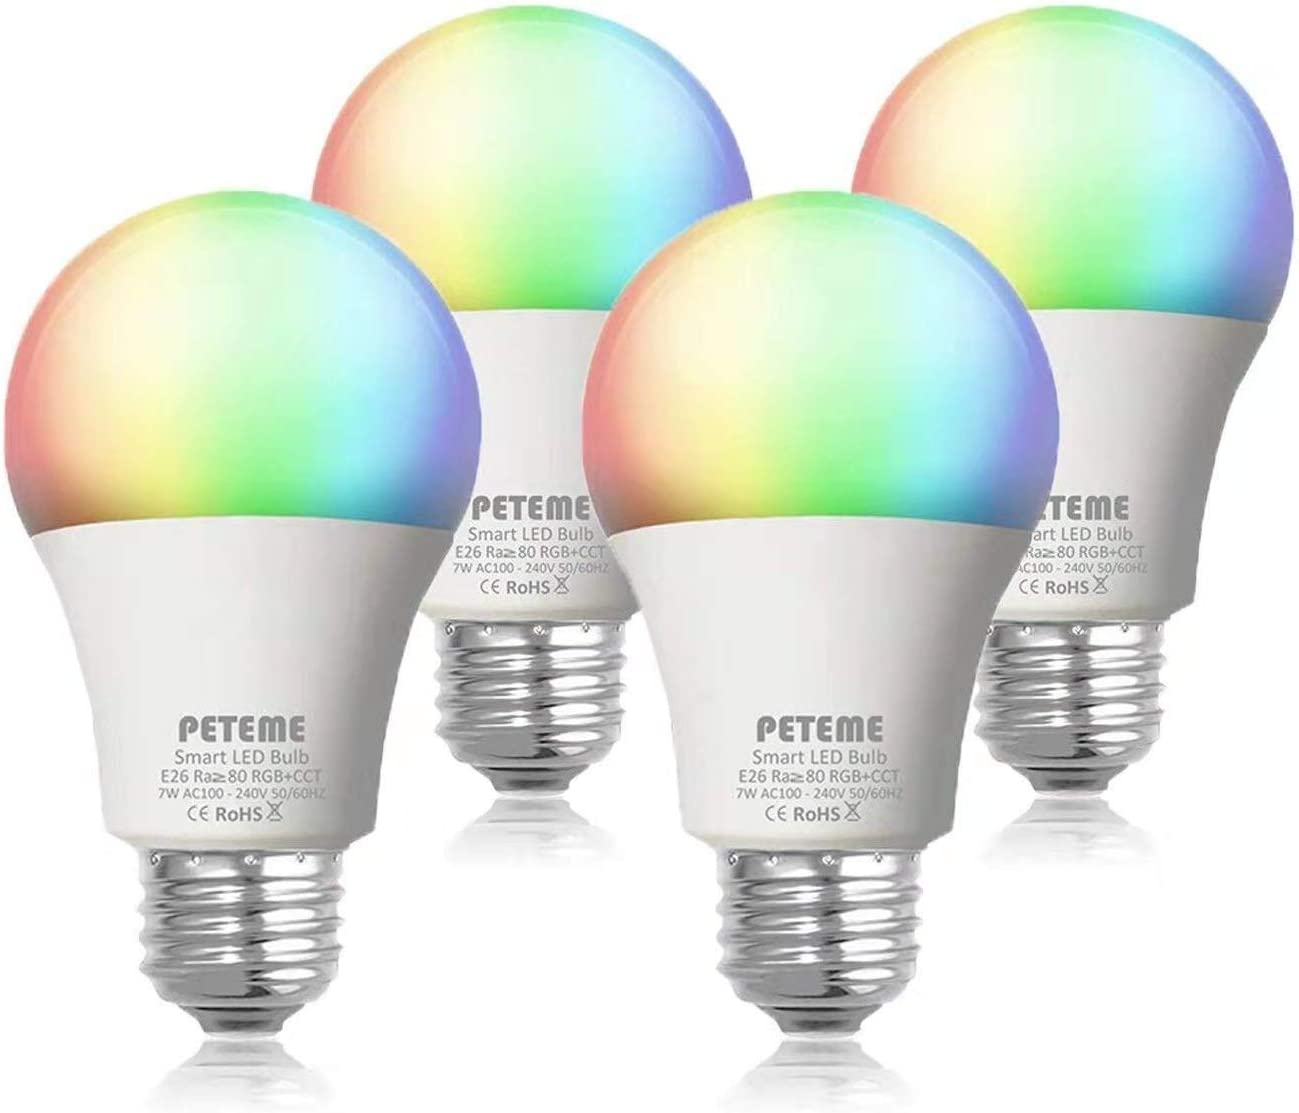 Peteme Alexa Smart Light Bulb 2.4G not 5G , RGB Color Changing LED WiFi Bulb, Work with Alexa, Siri, Echo, Google Home No Hub Required , E26 A19 60W Equivalent 4 Pack